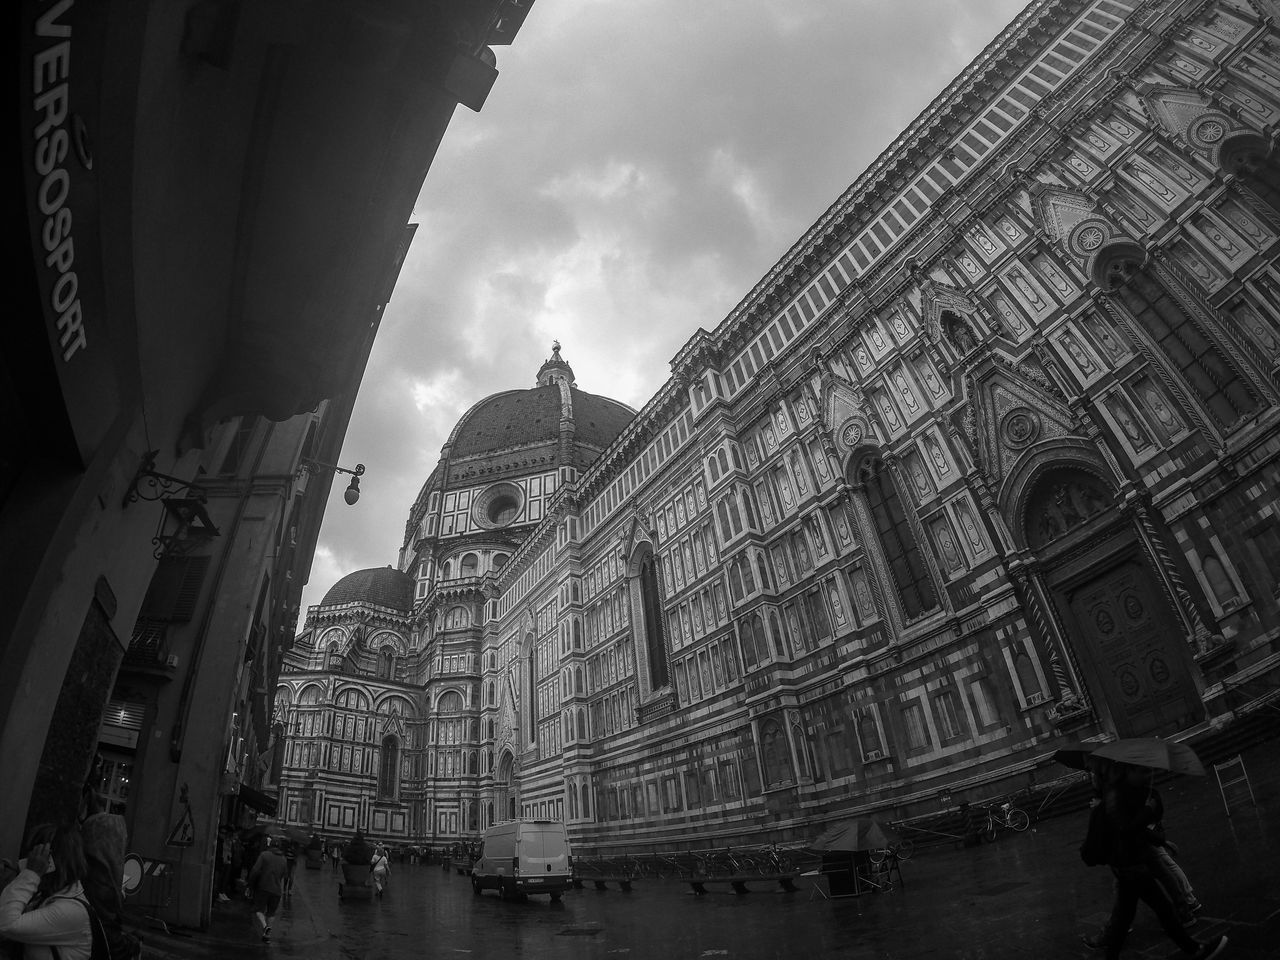 Reducive spaces, expander views. #Firenze #Florence Blackandwhite Cloudy Duomo Duomo Di Firenze Italia Italy